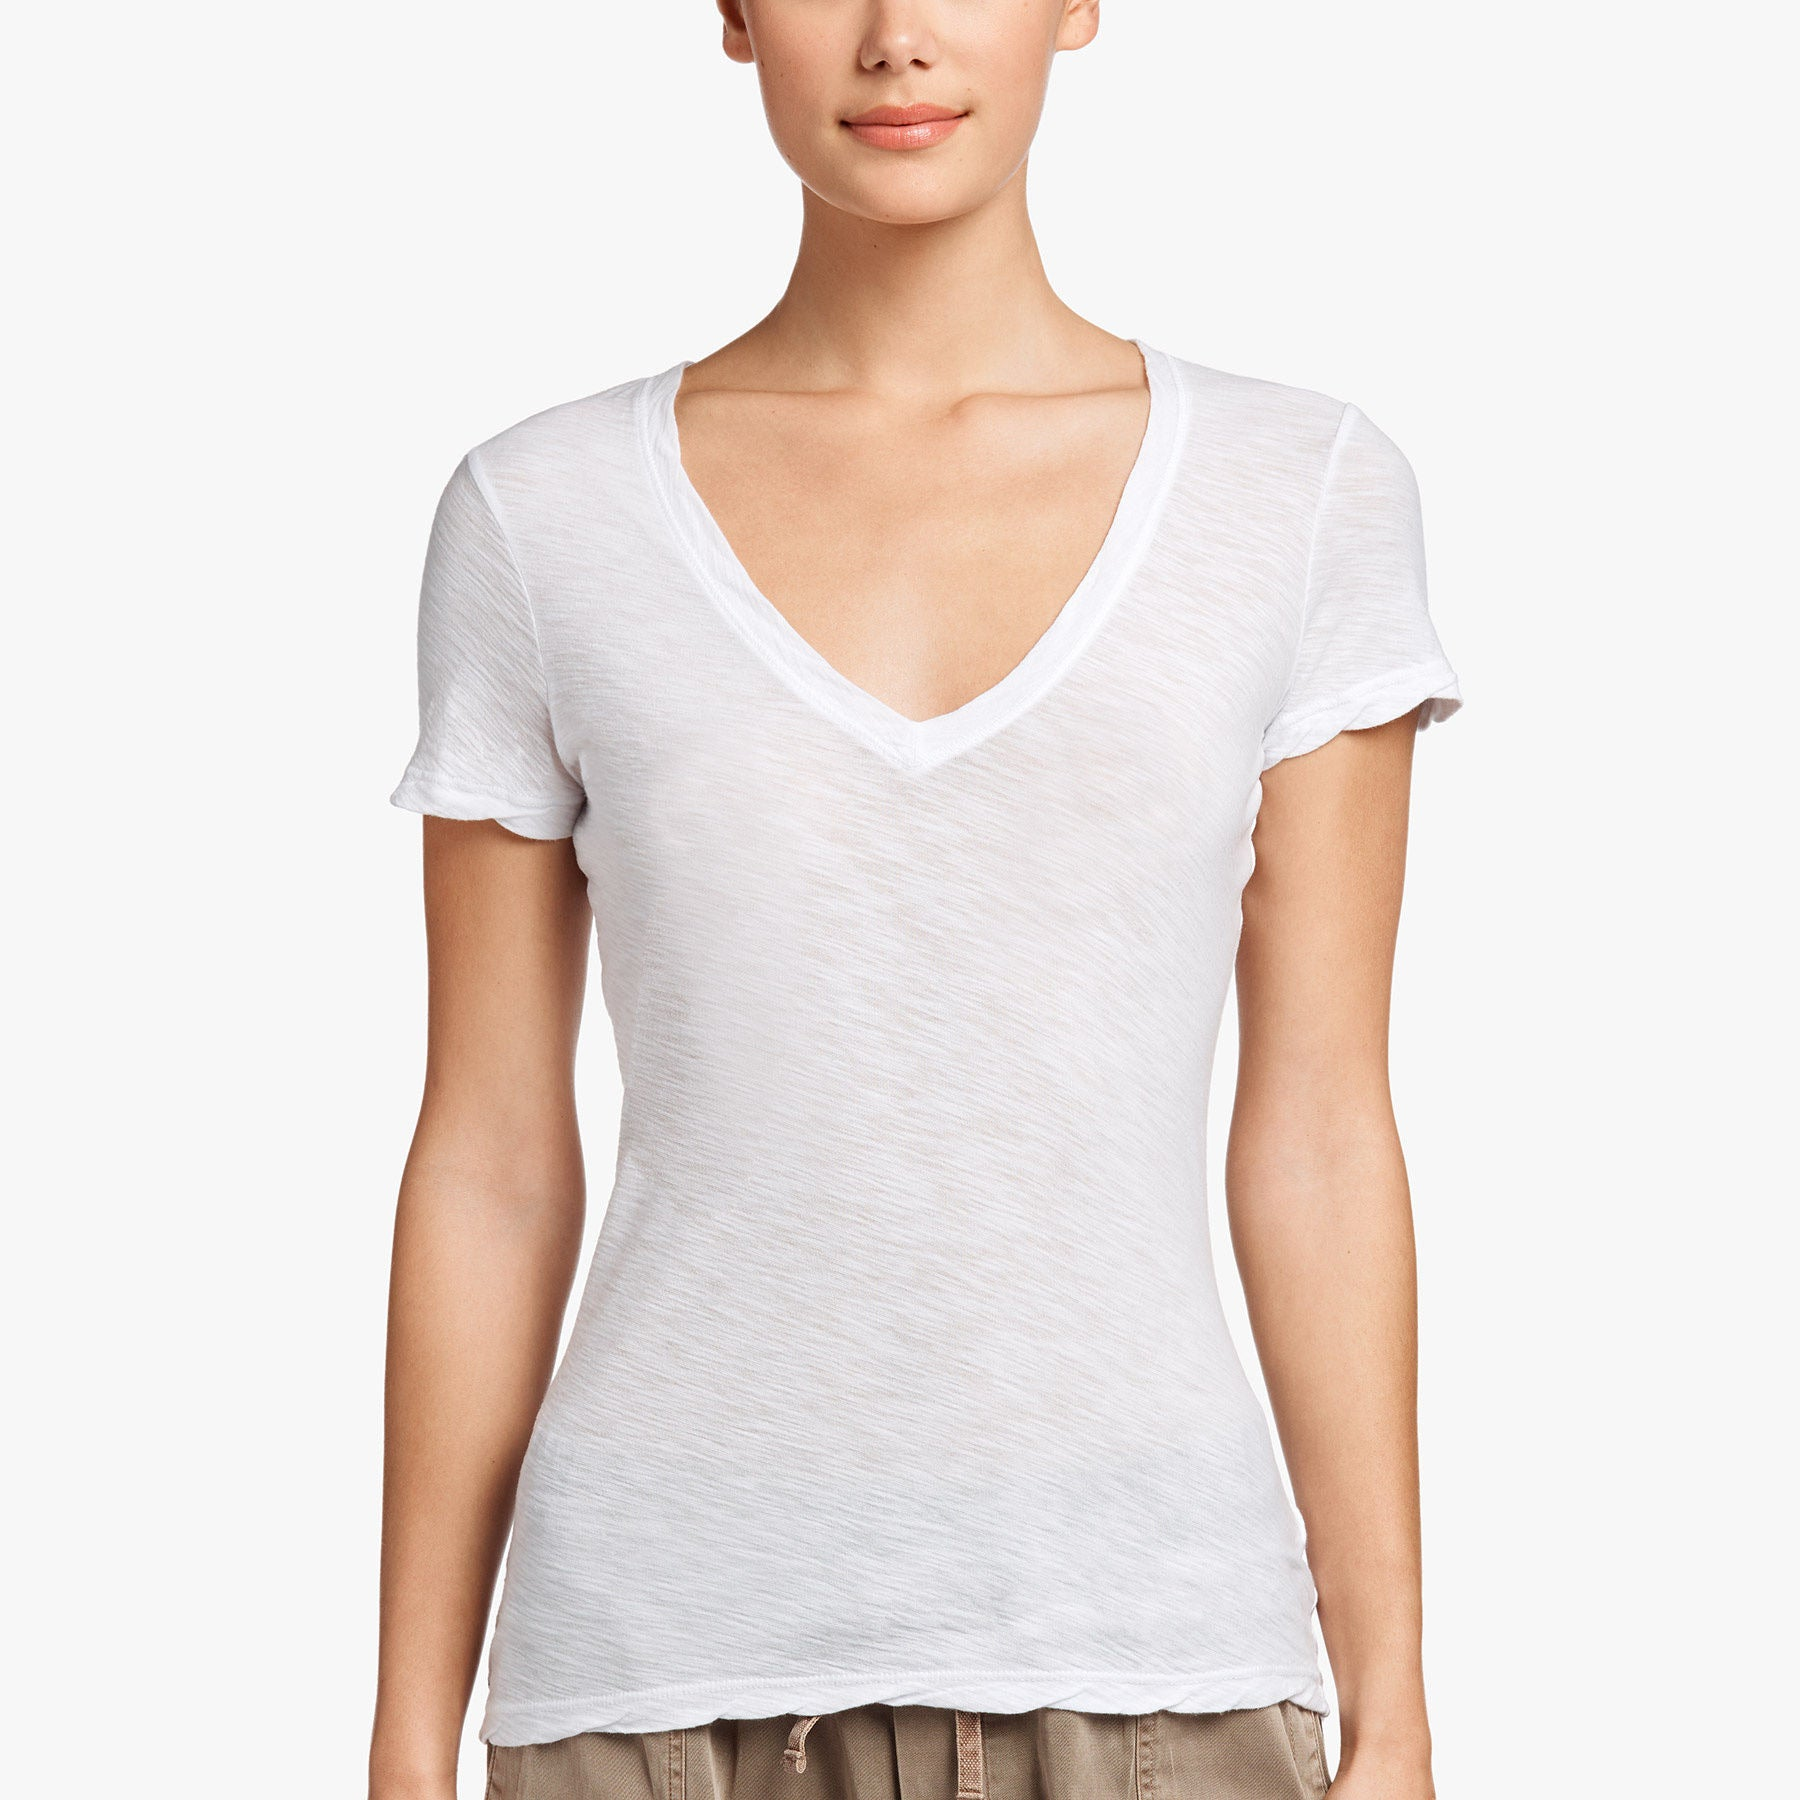 JAMES PERSE CASUAL T W/ REVERSE BINDING - WHITE